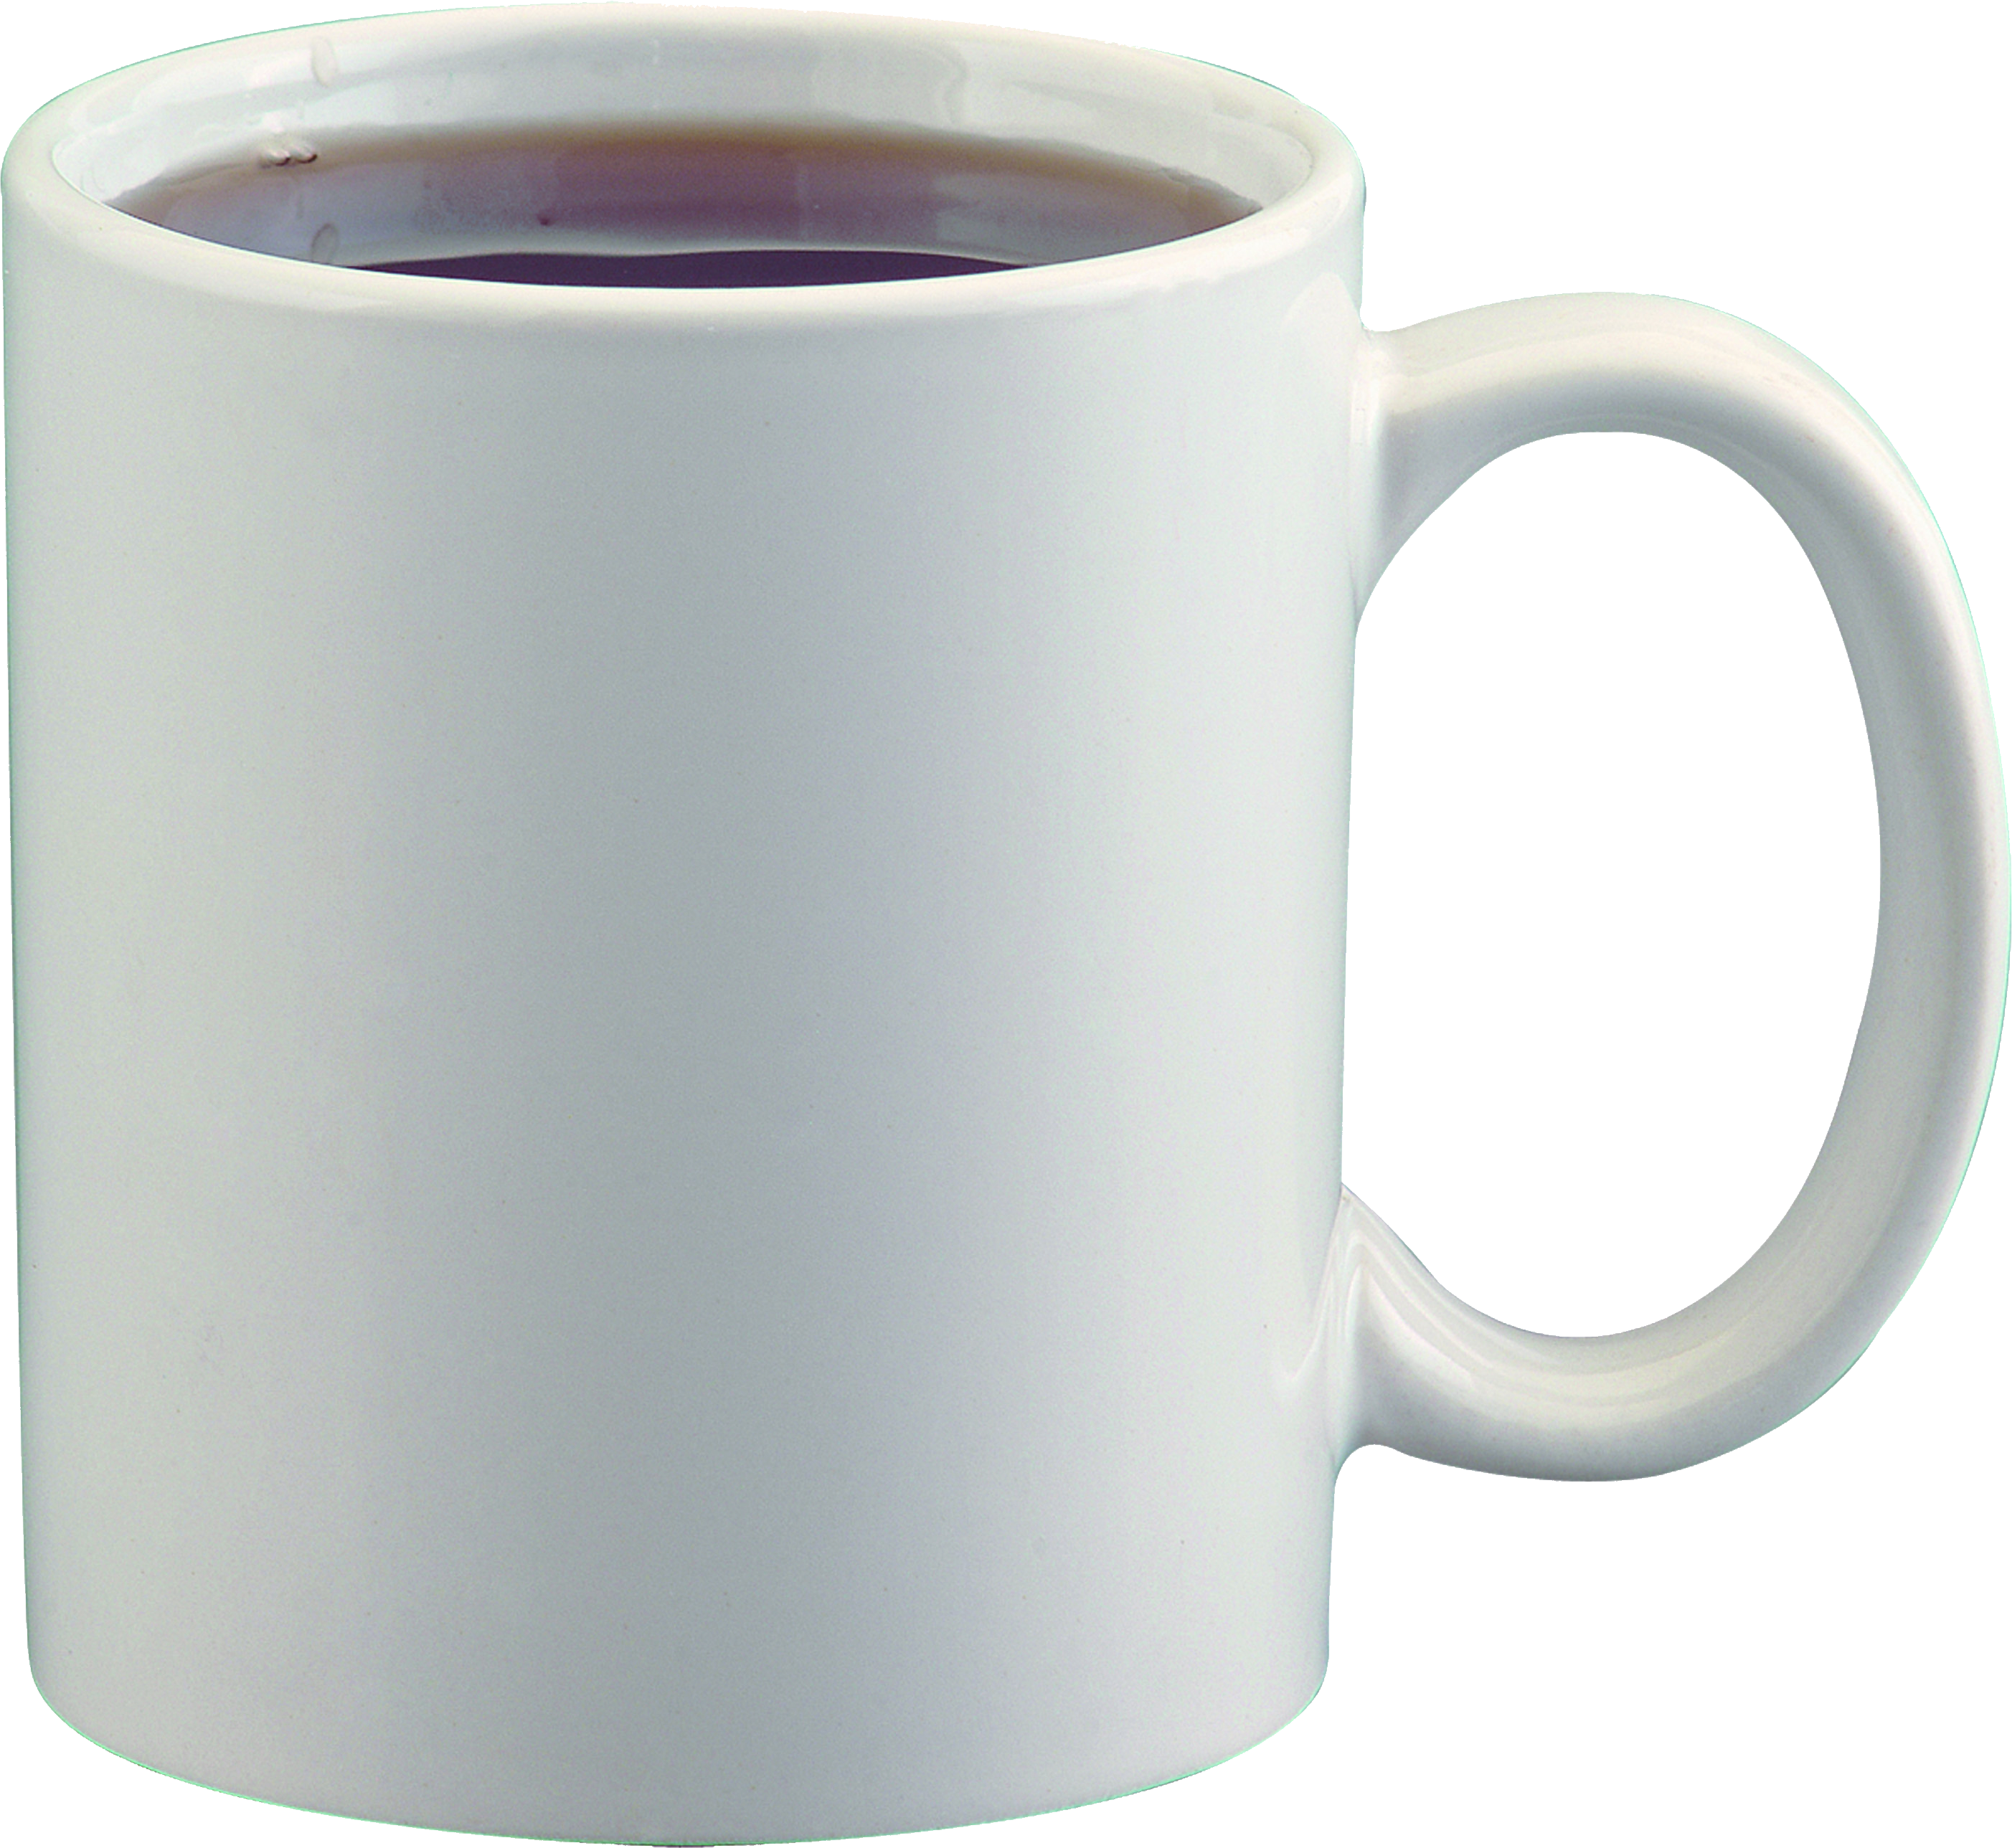 Cup coffee png image. Mug clipart transparent background